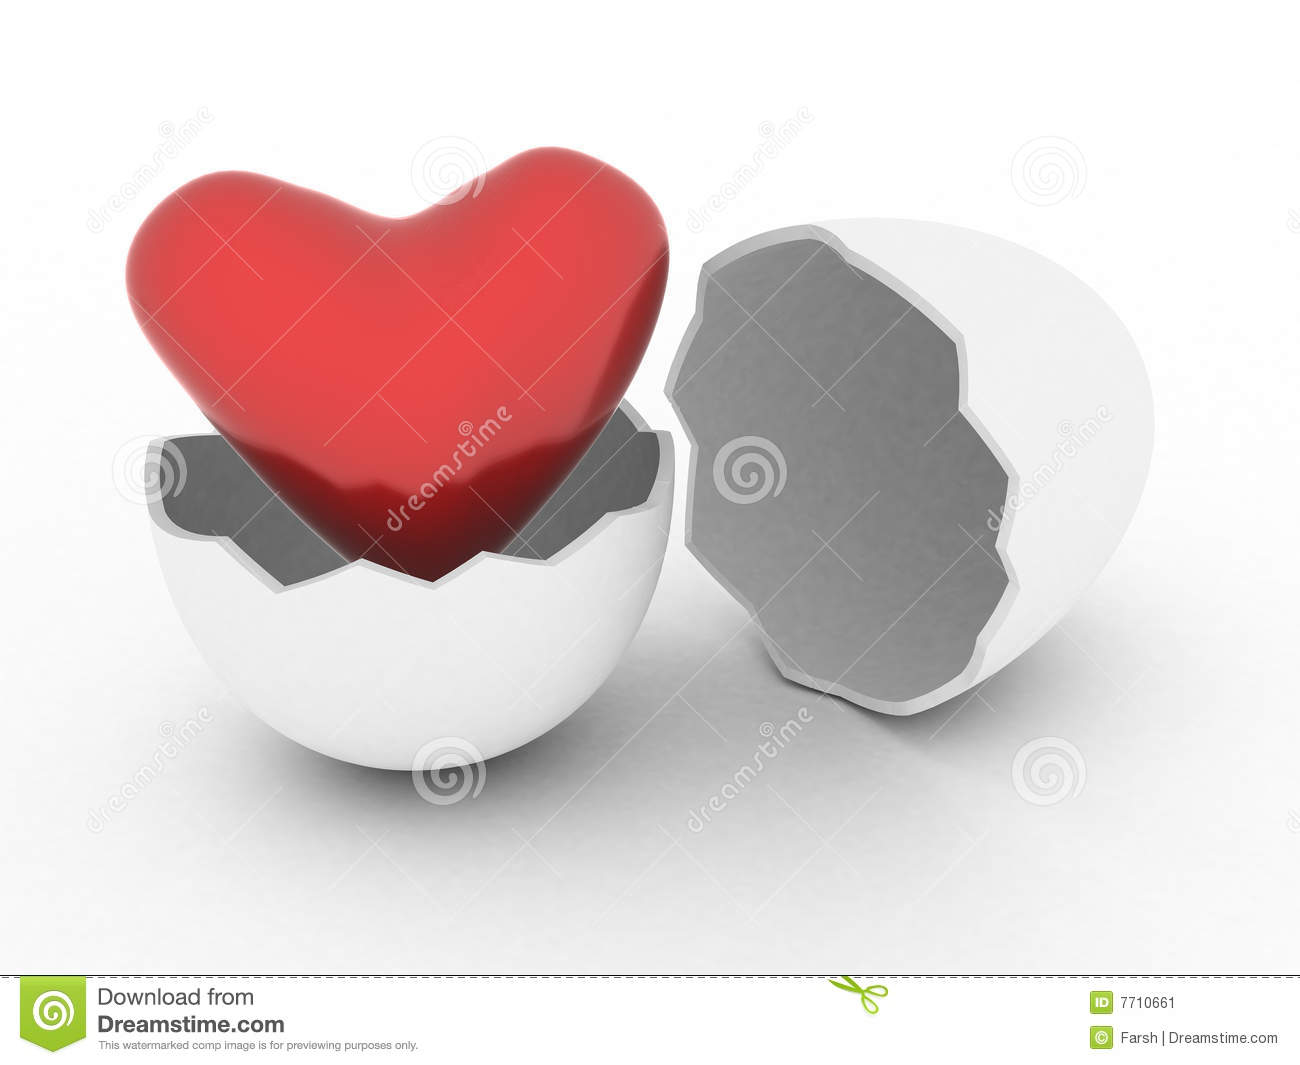 Heart in egg